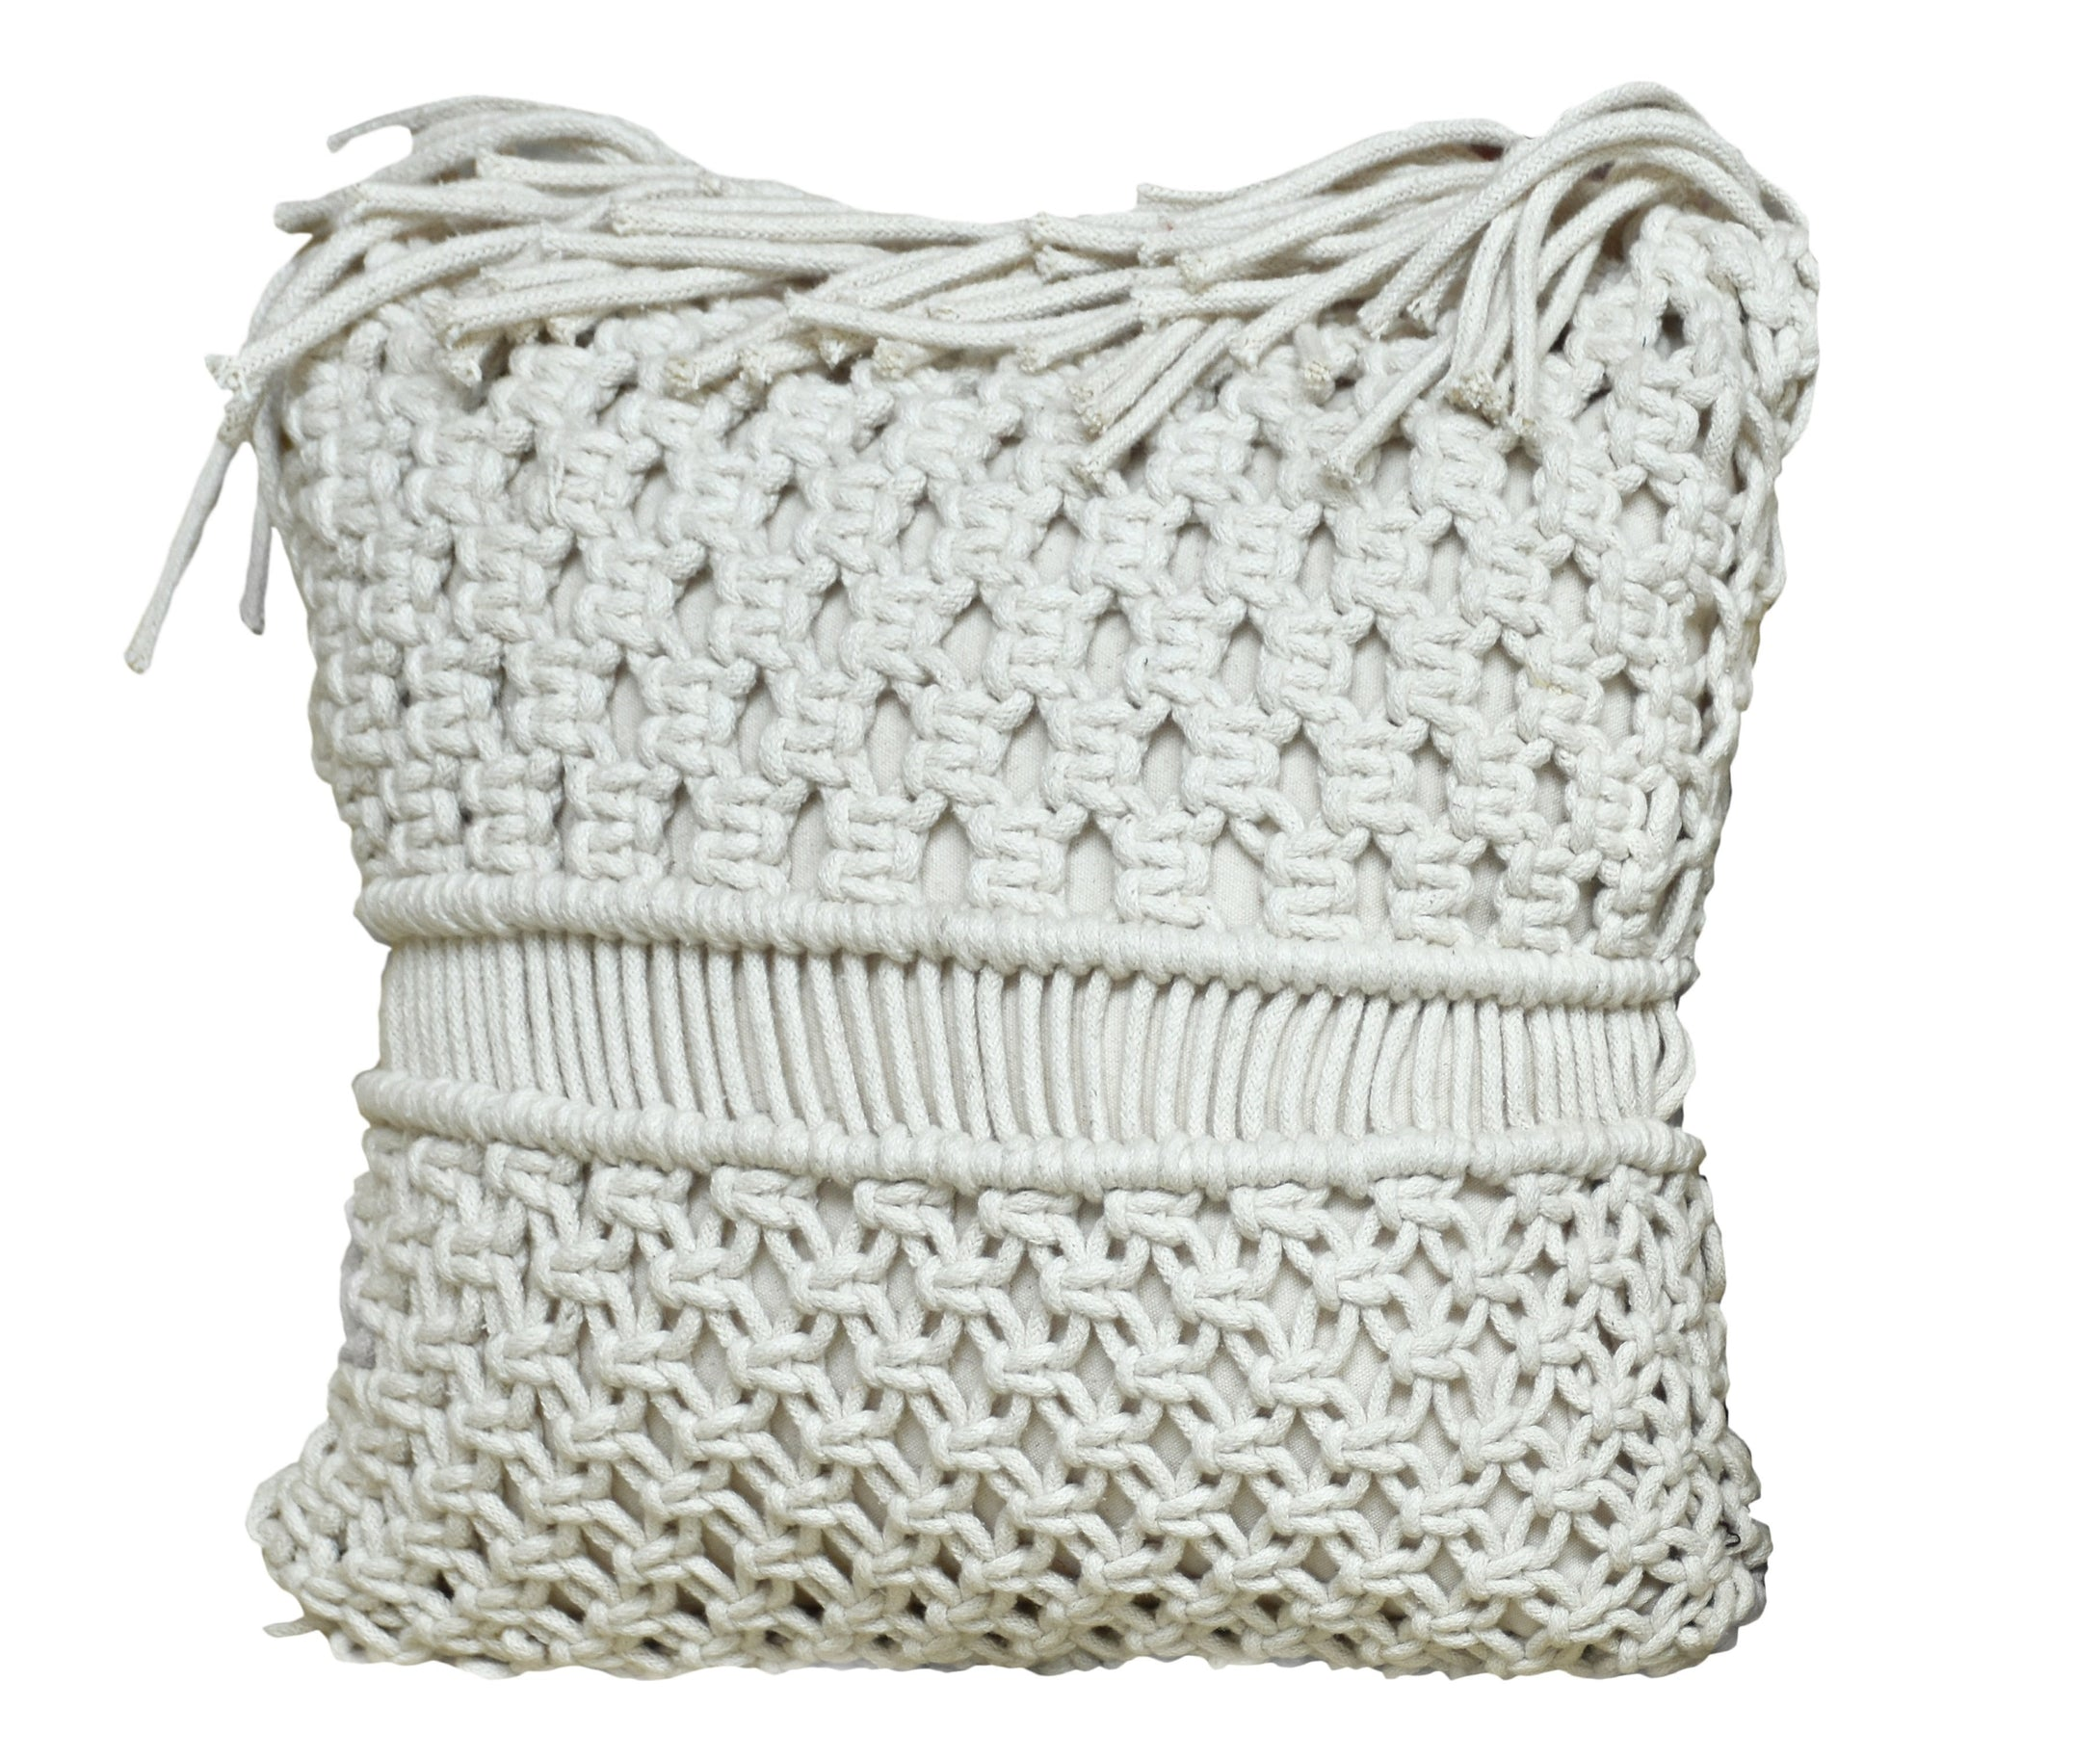 Macrame 2 Cushion